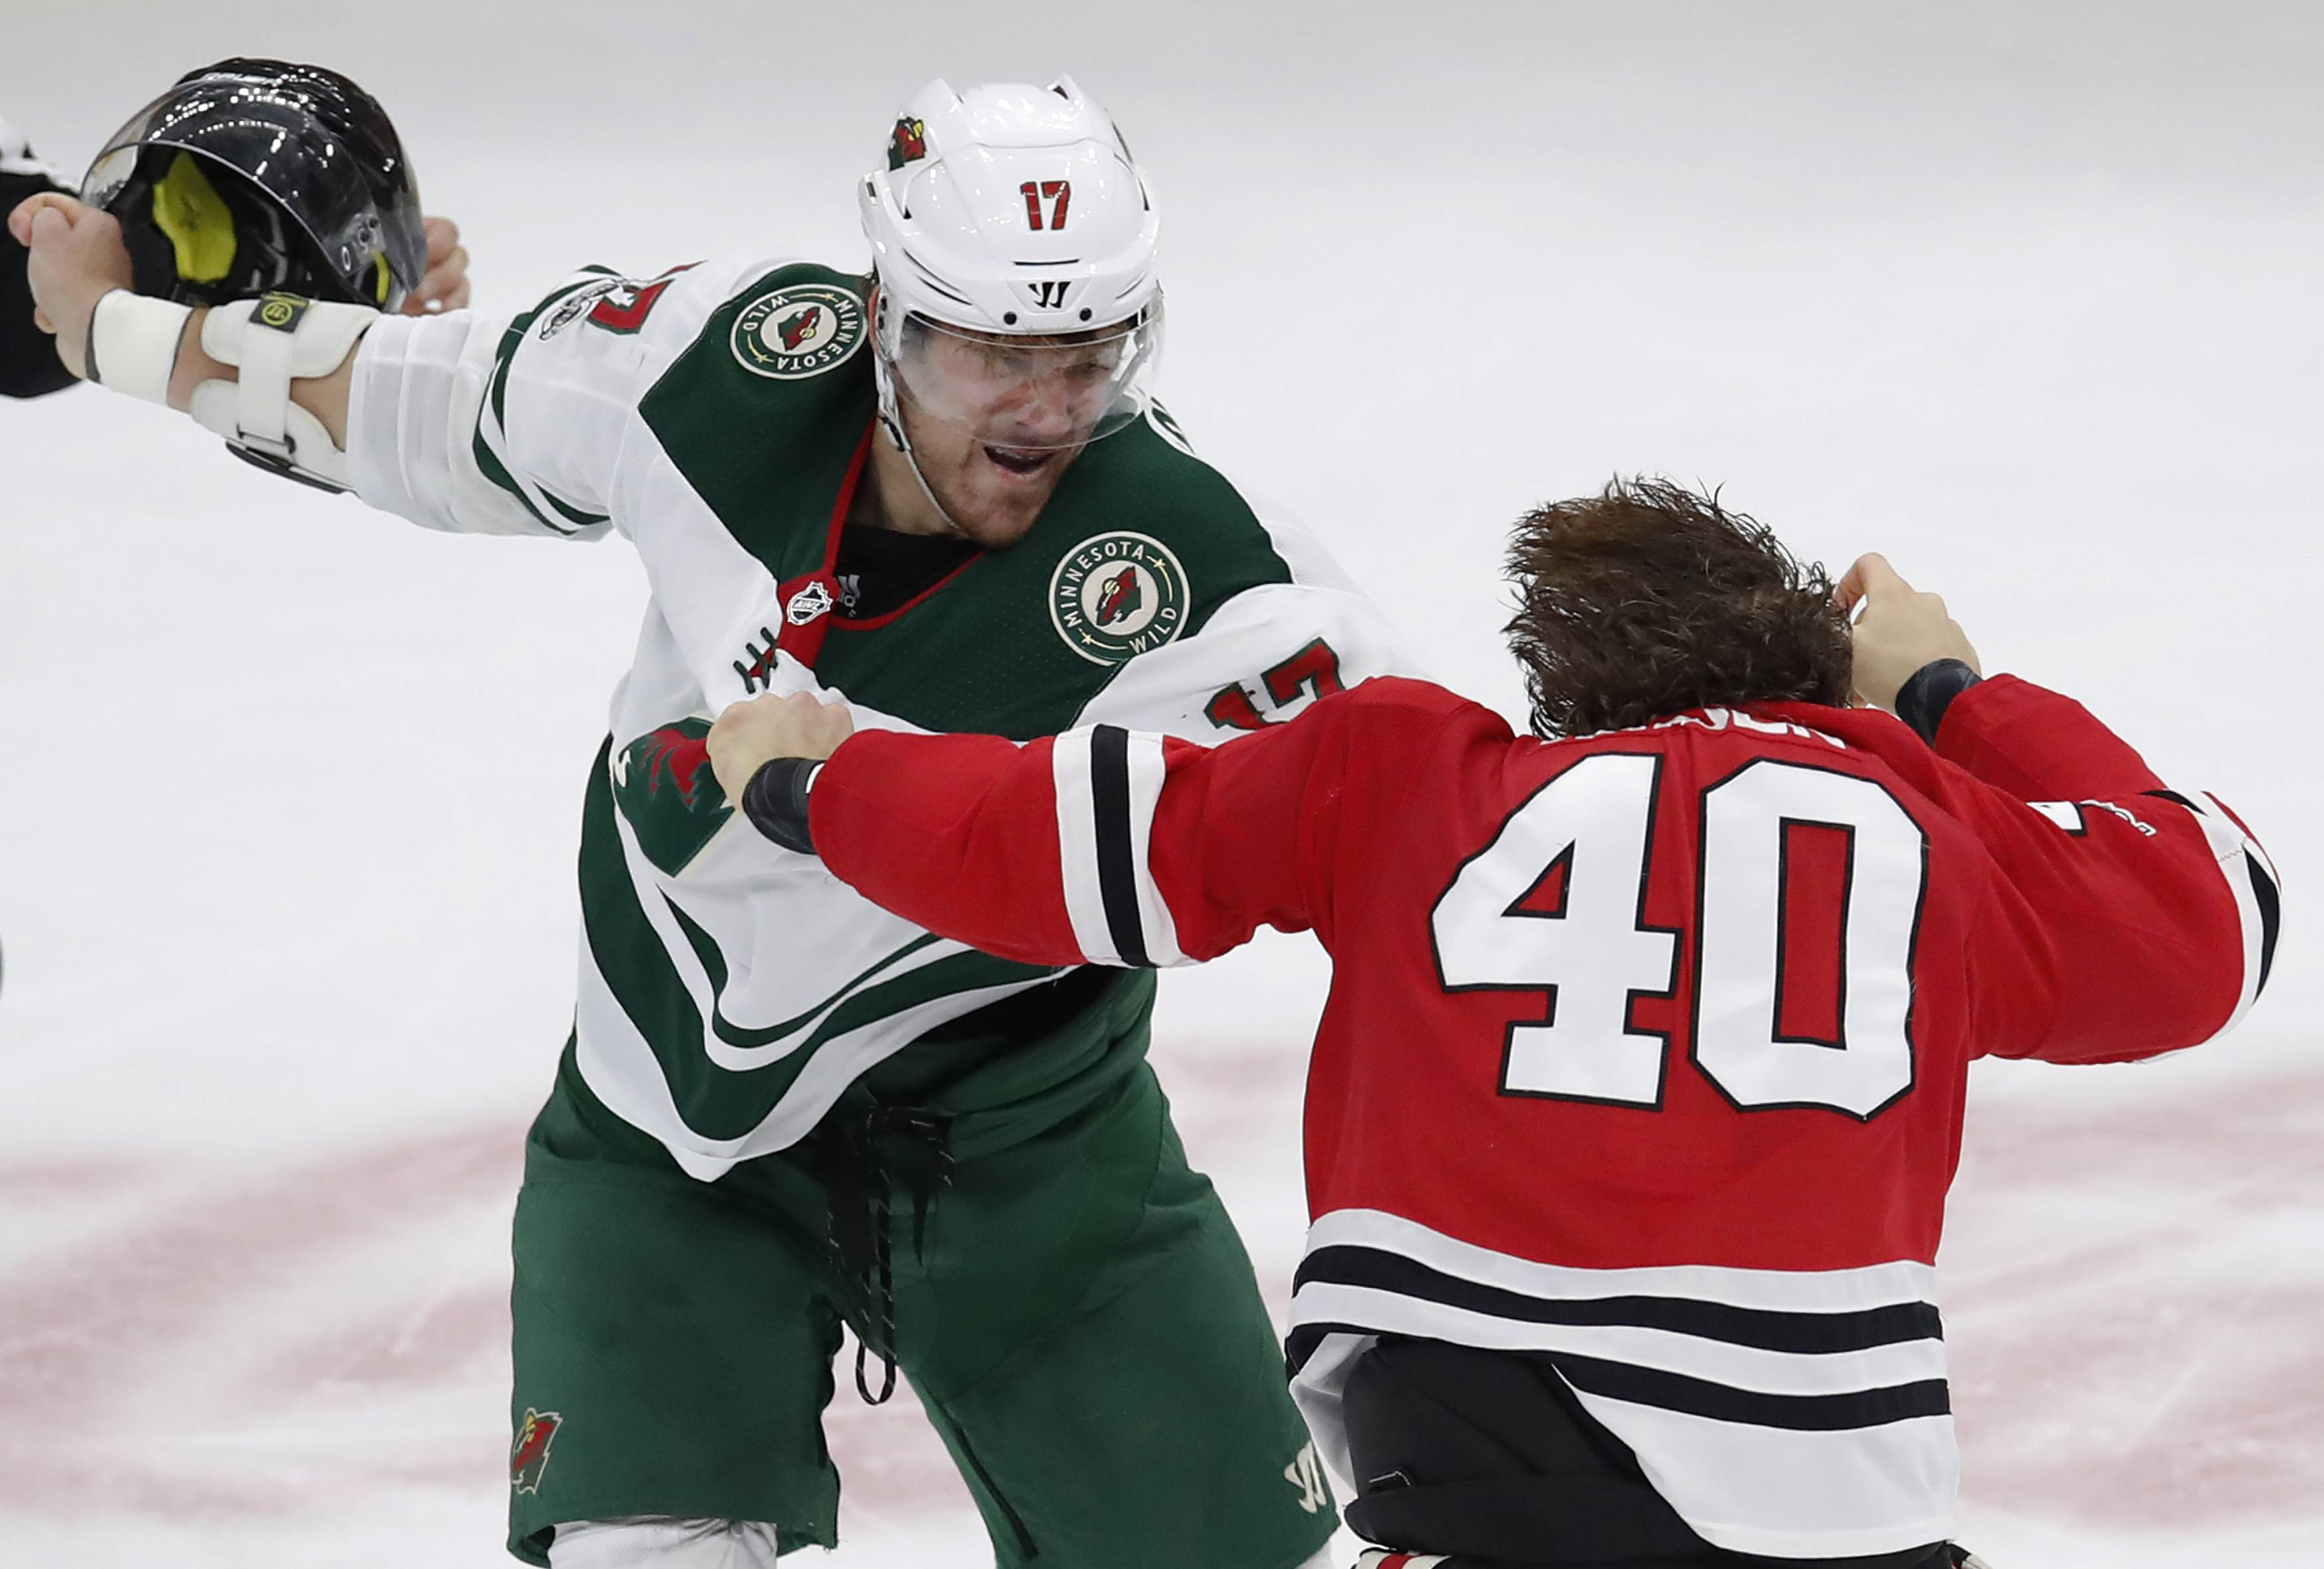 Minnesota Wild's Marcus Foligno, left, and Chicago Blackhawks' John Hayden squared off in the second period of Thursday's game in Chicago.